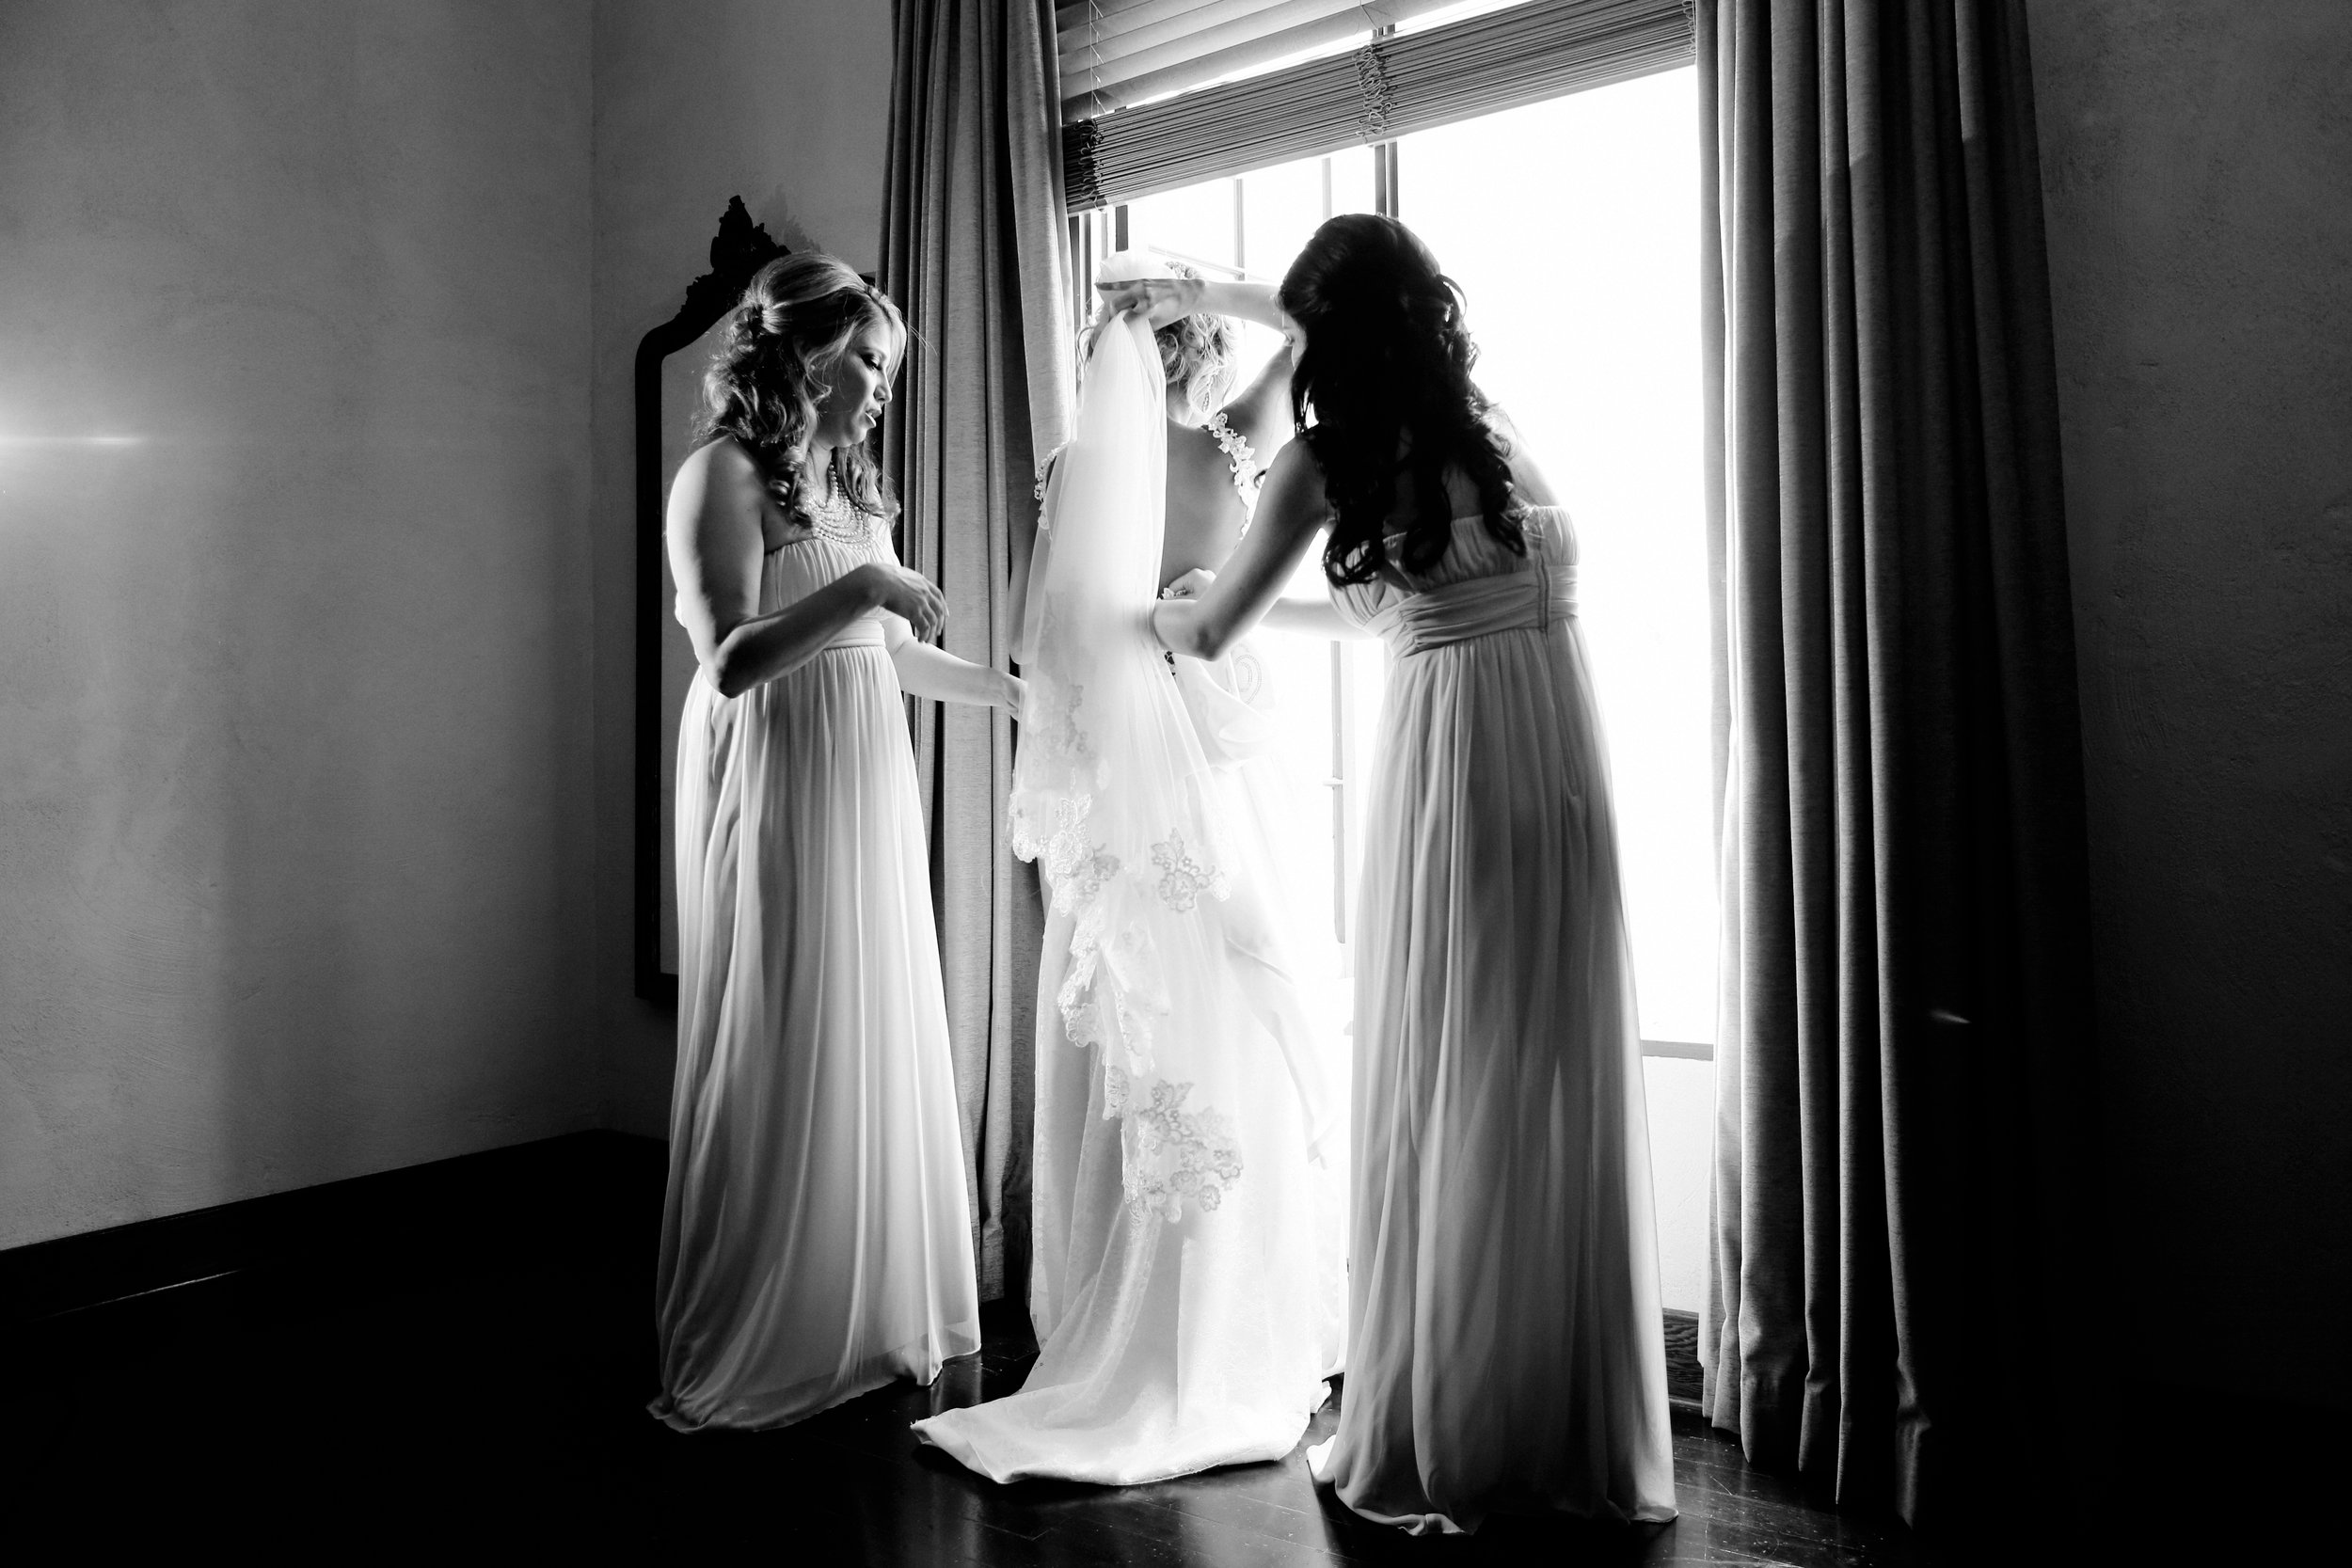 ShadowcatcherGalleryOne_SanDiegoWeddingPhotogrpaher_001.JPG